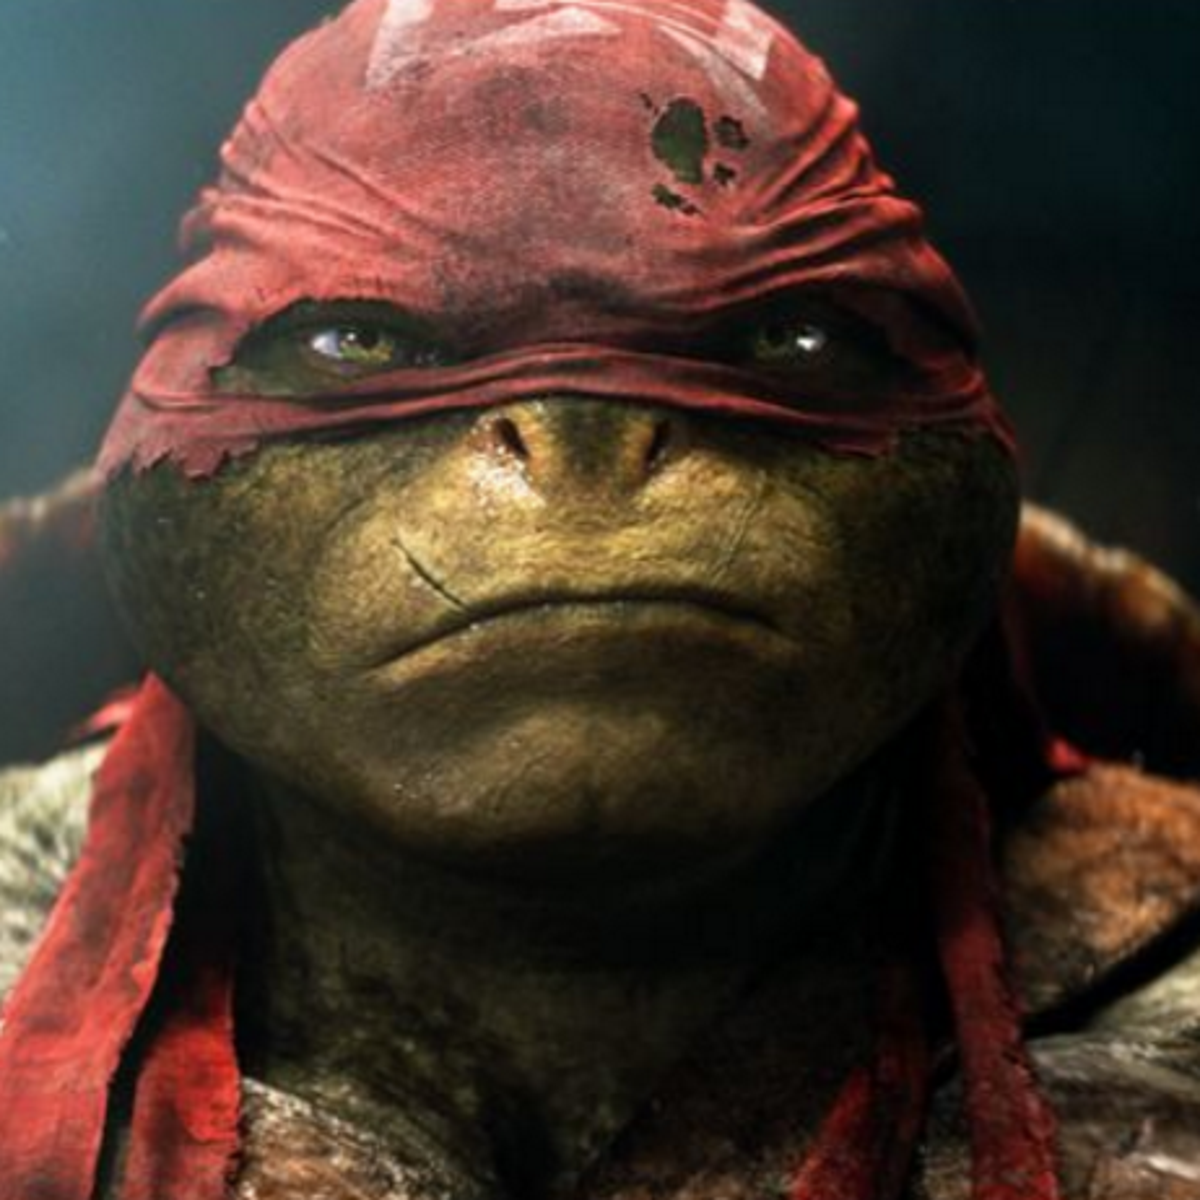 The 10 Most Angsty Things The Ninja Turtle Raphael Ever Said